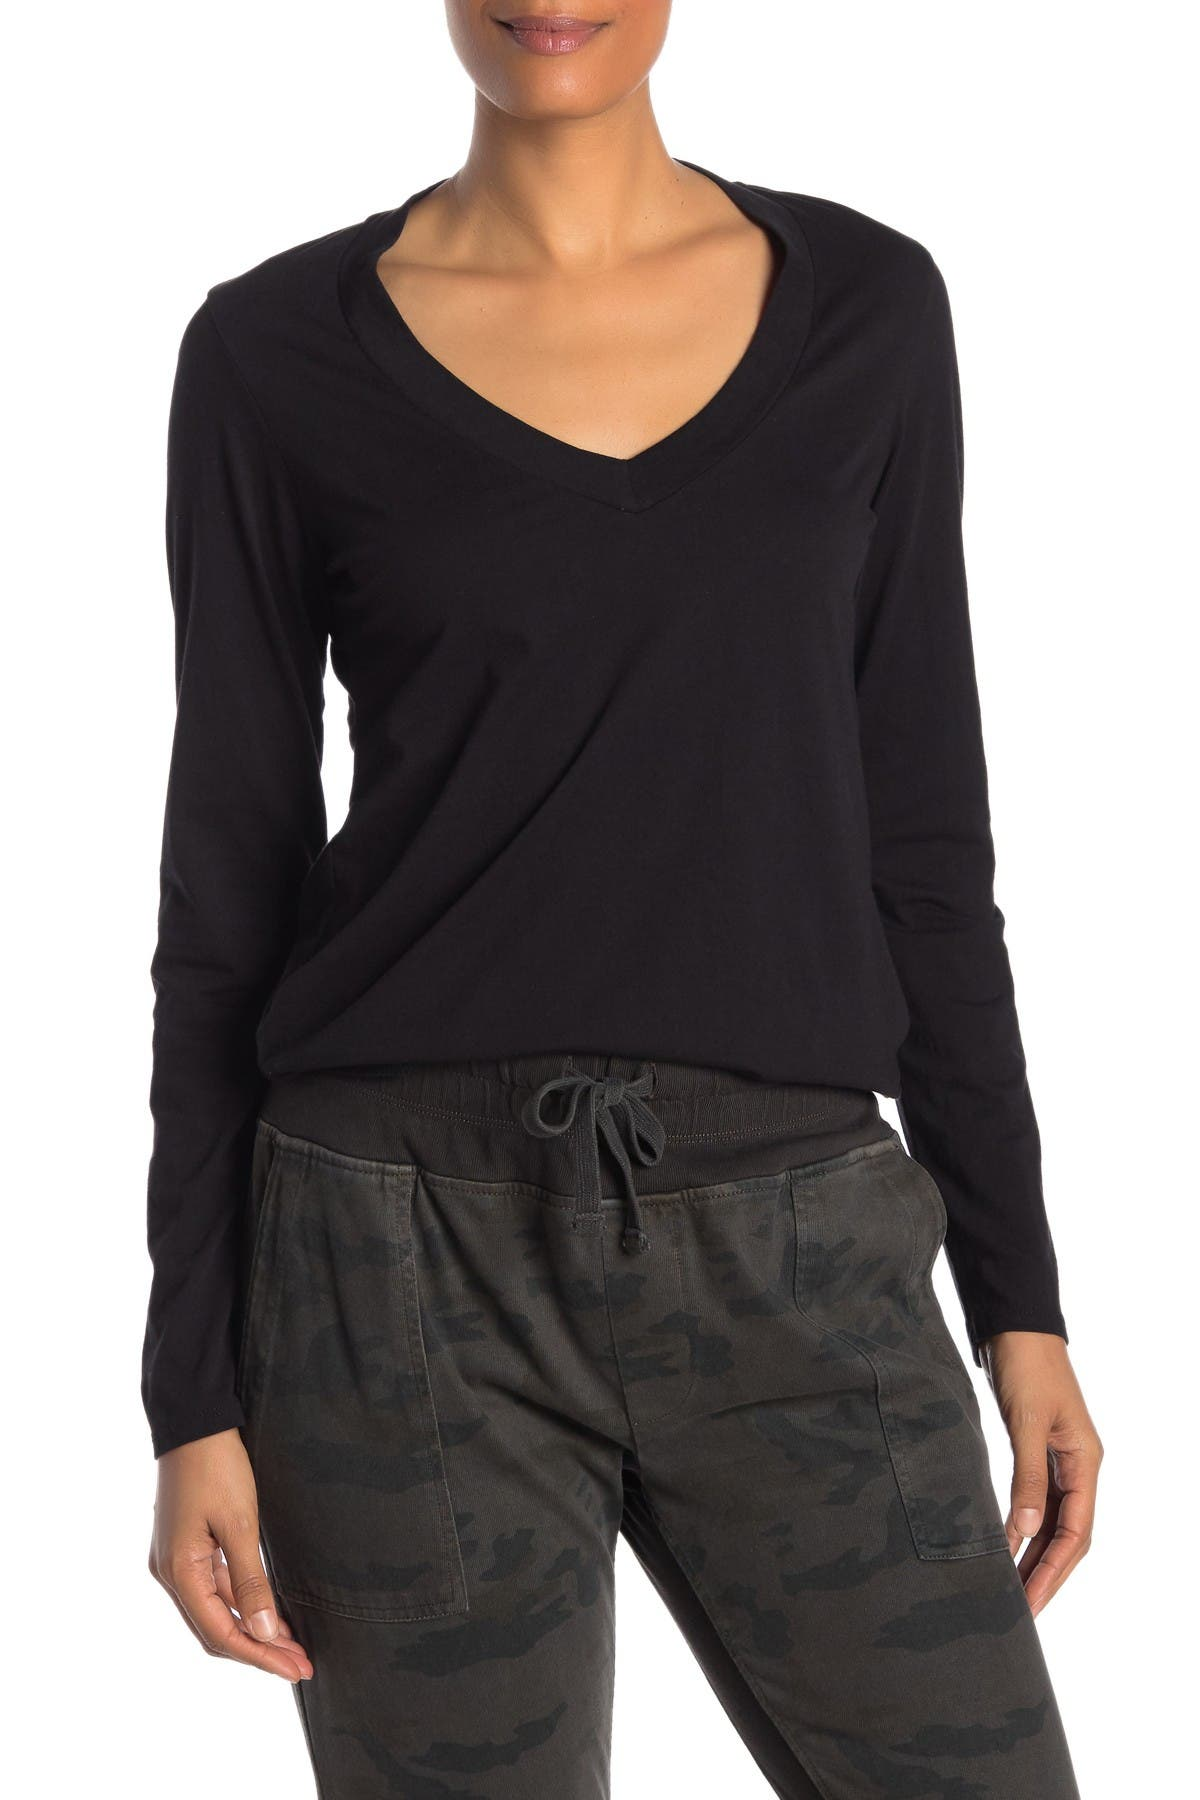 Image of James Perse Solid V-Neck Long Sleeve T-Shirt